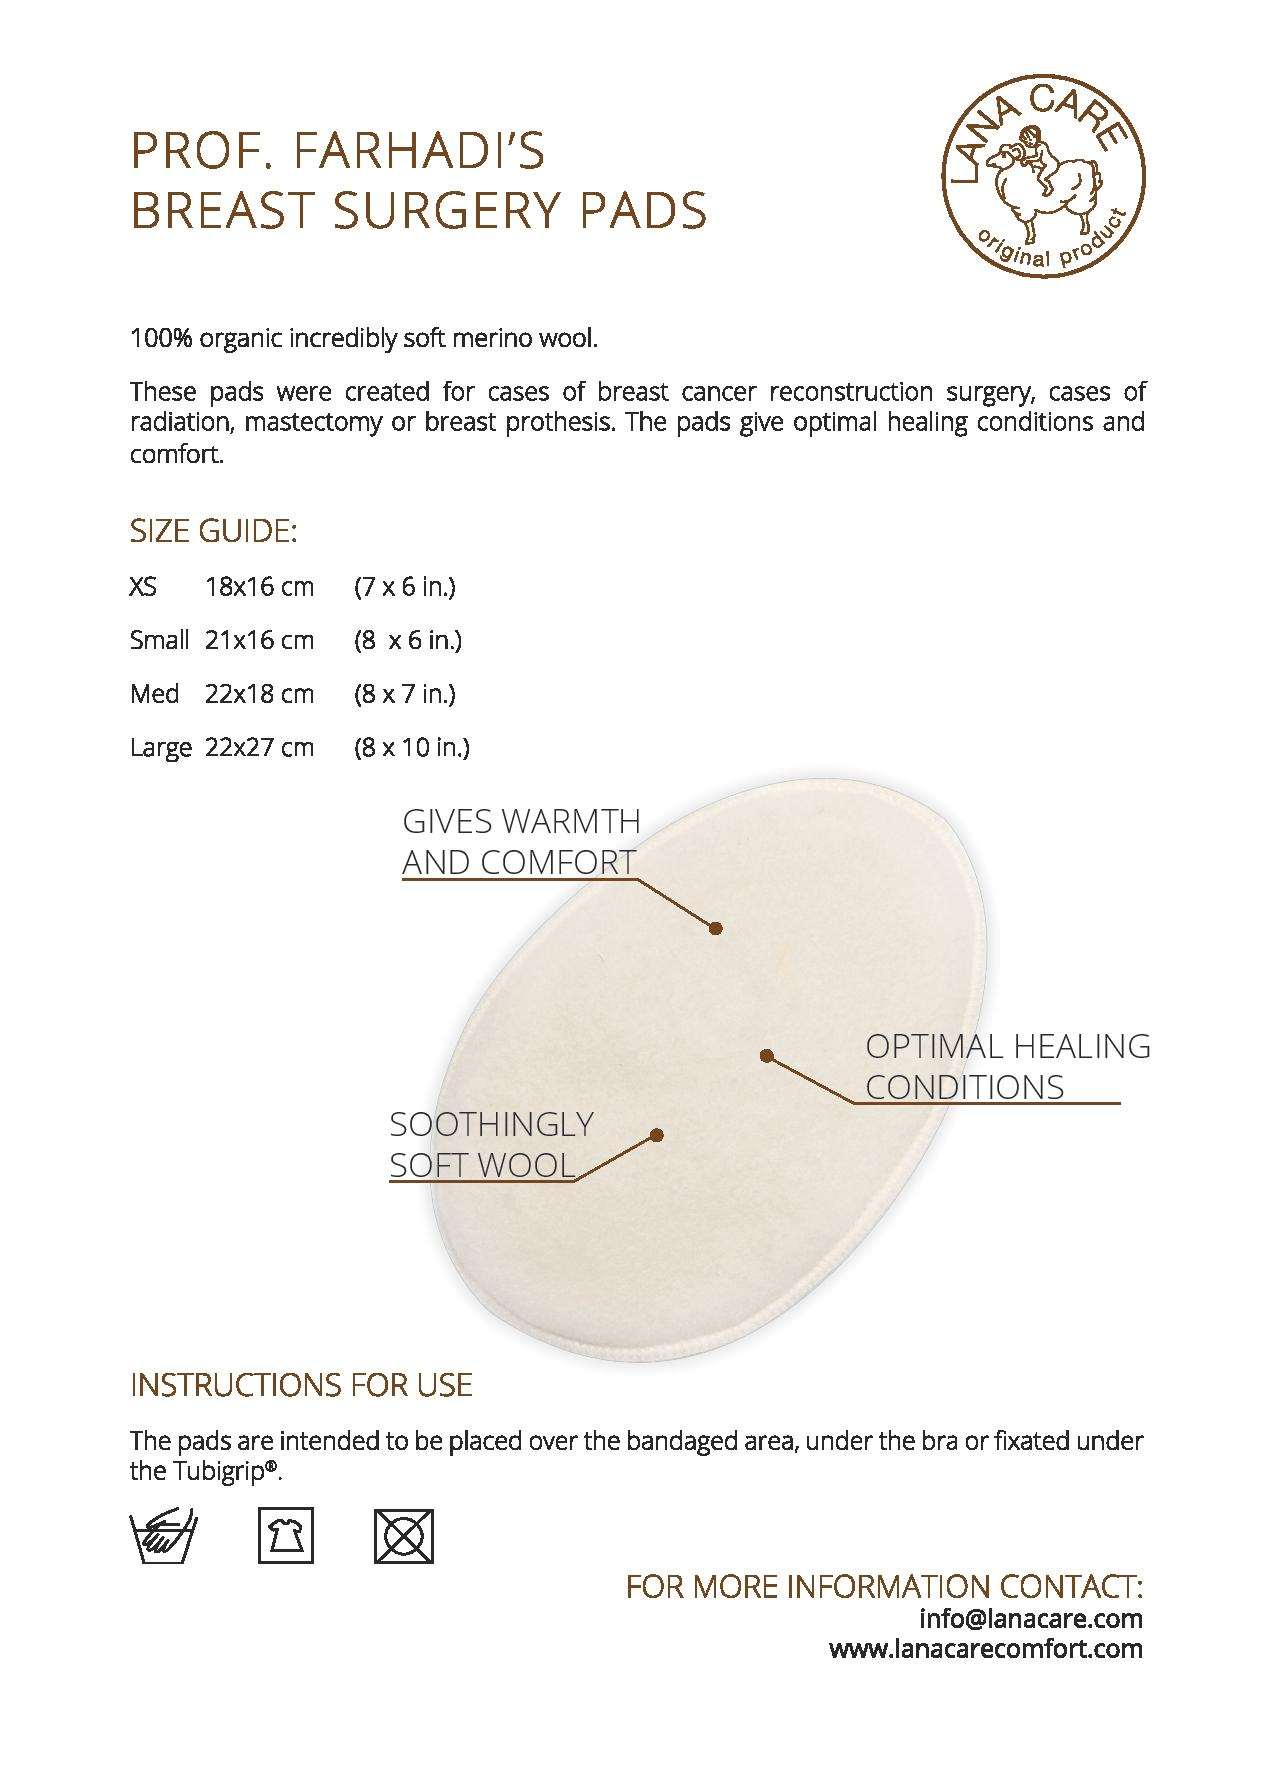 Prof. Farhadi S Breast Surgery Pads1 Page 001